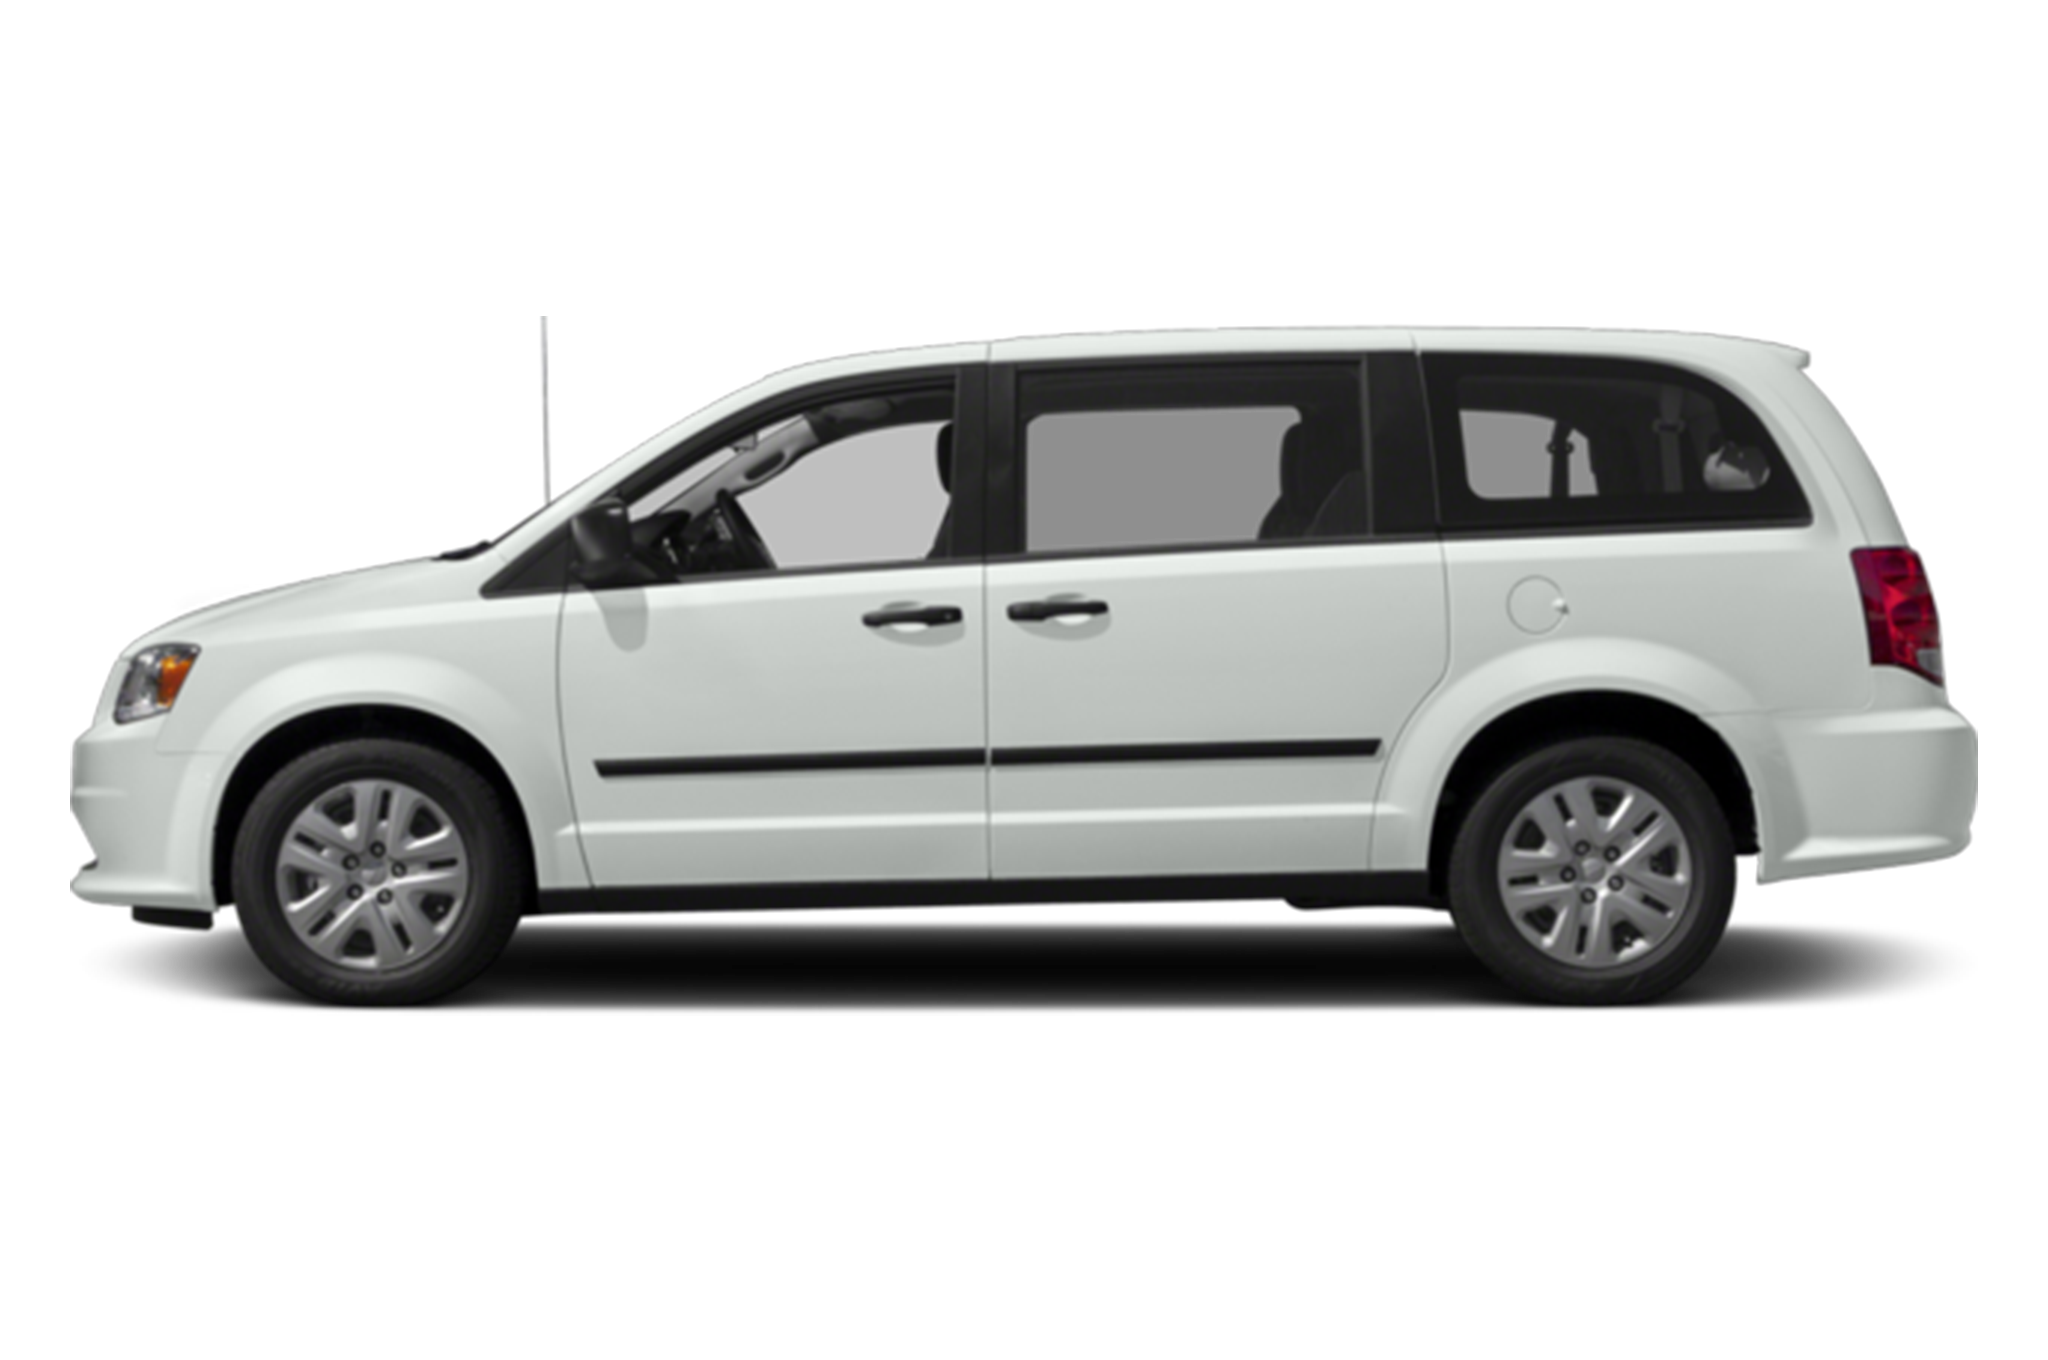 New Dodge Grand Caravan Delray Beach FL